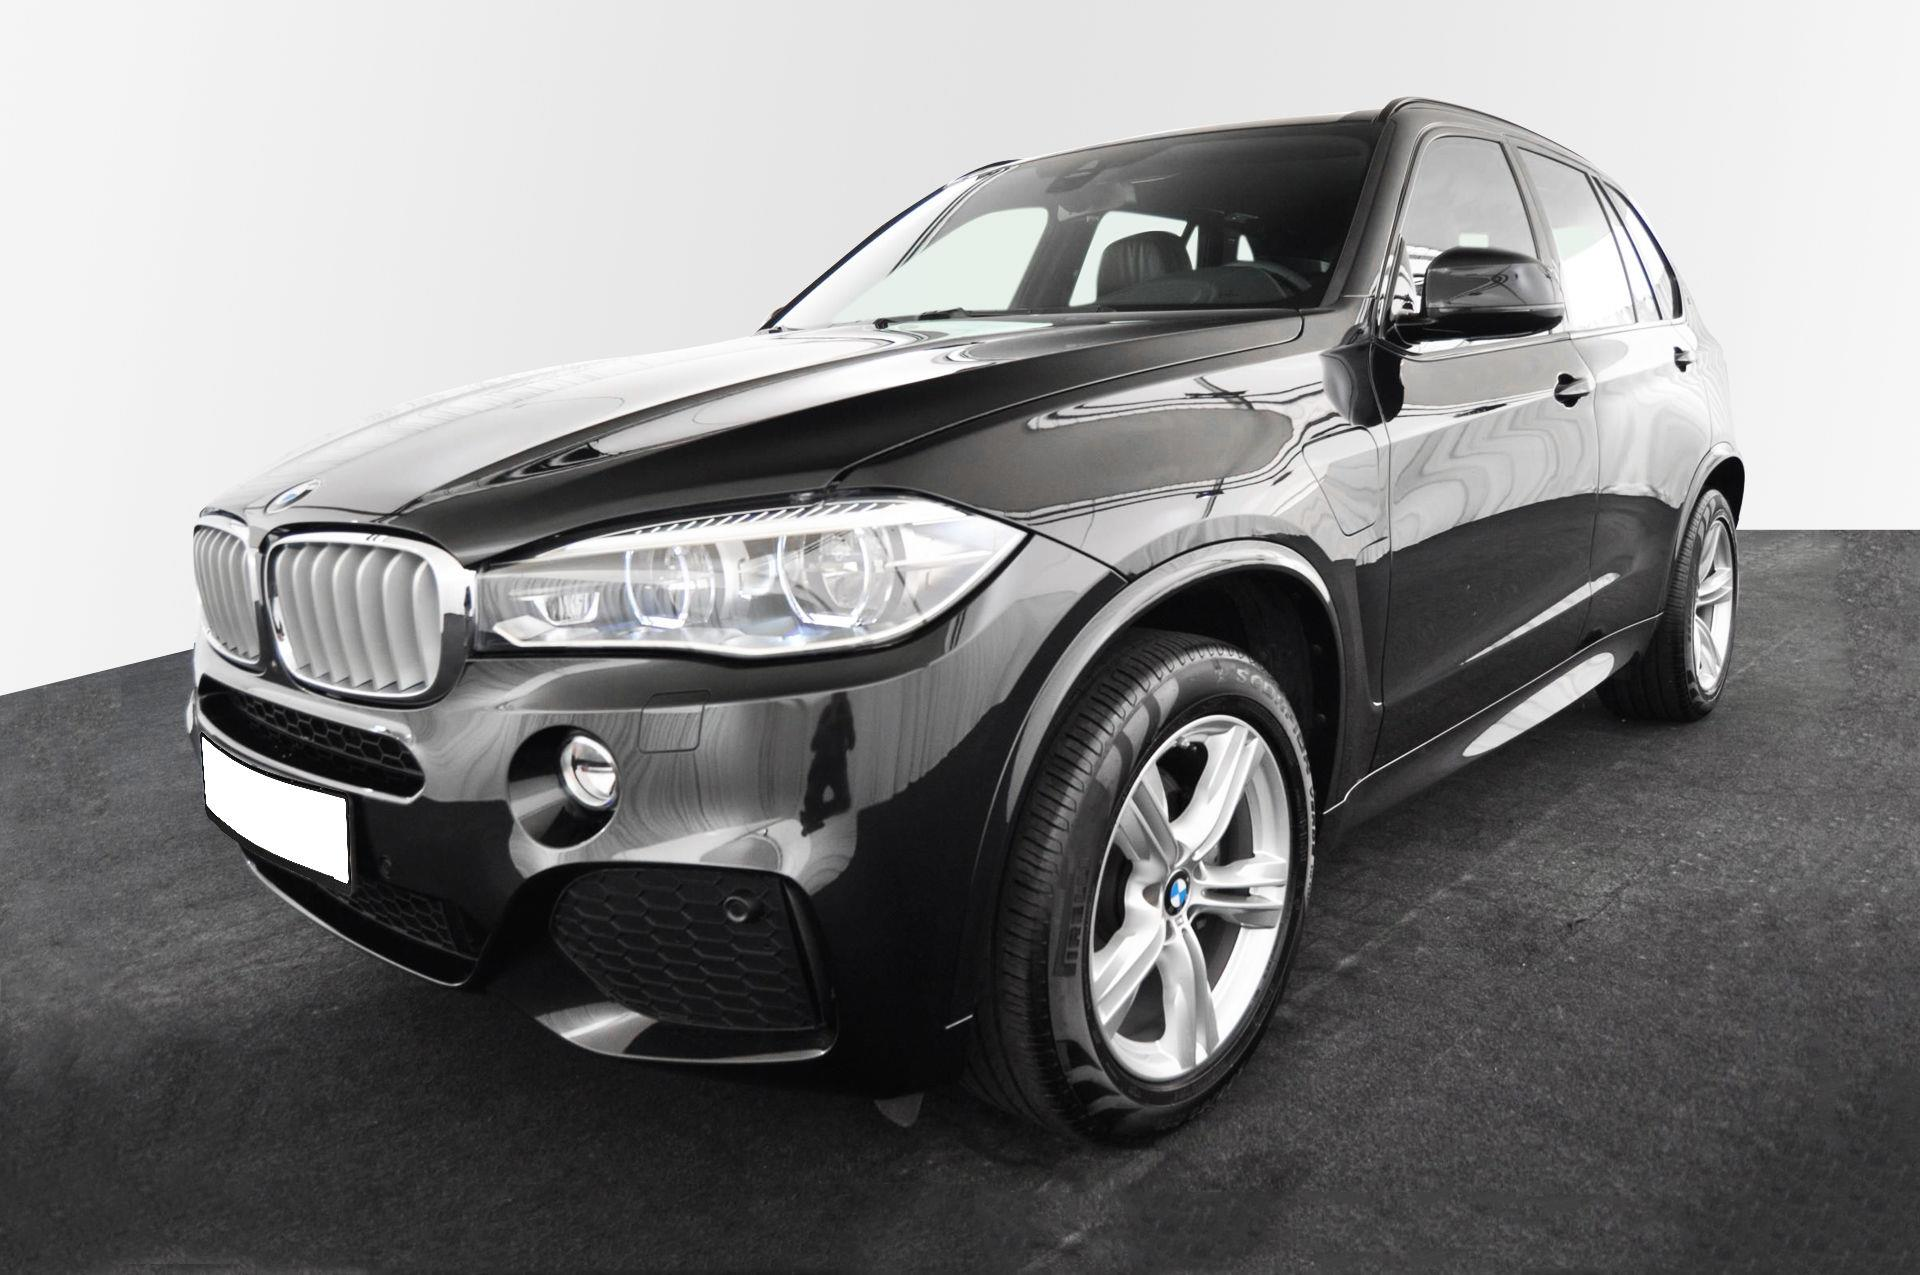 X5 xDrive 40e * Hibrido * iPerformance * M-Sport * Led  * Camará 360 0000006701